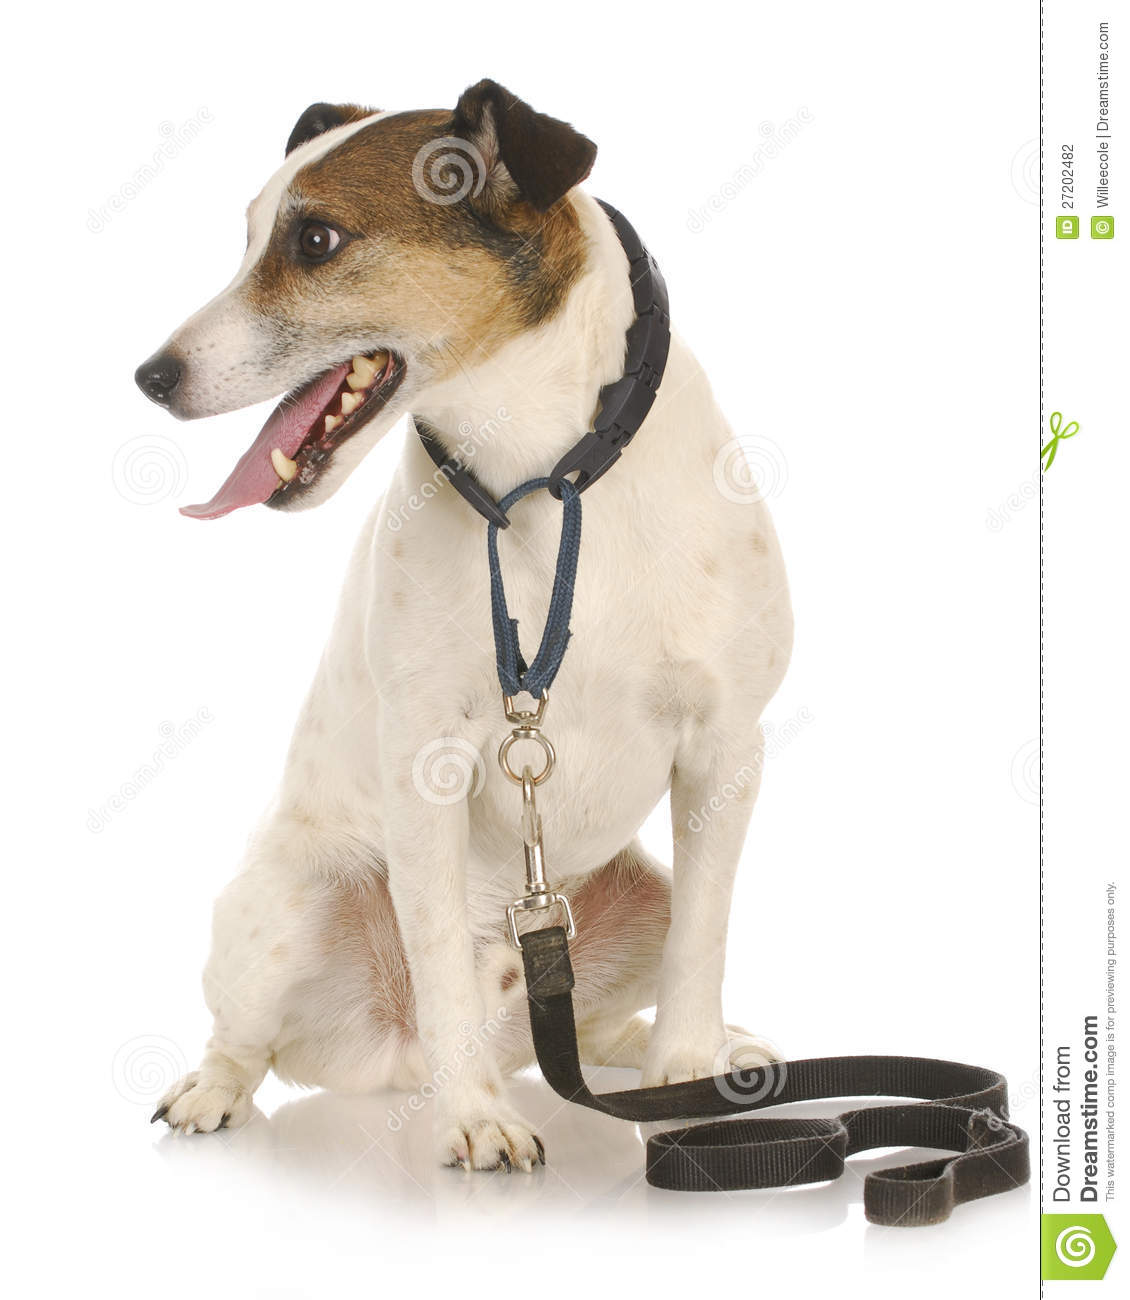 Dog Waiting To Go For A Walk Stock Photo